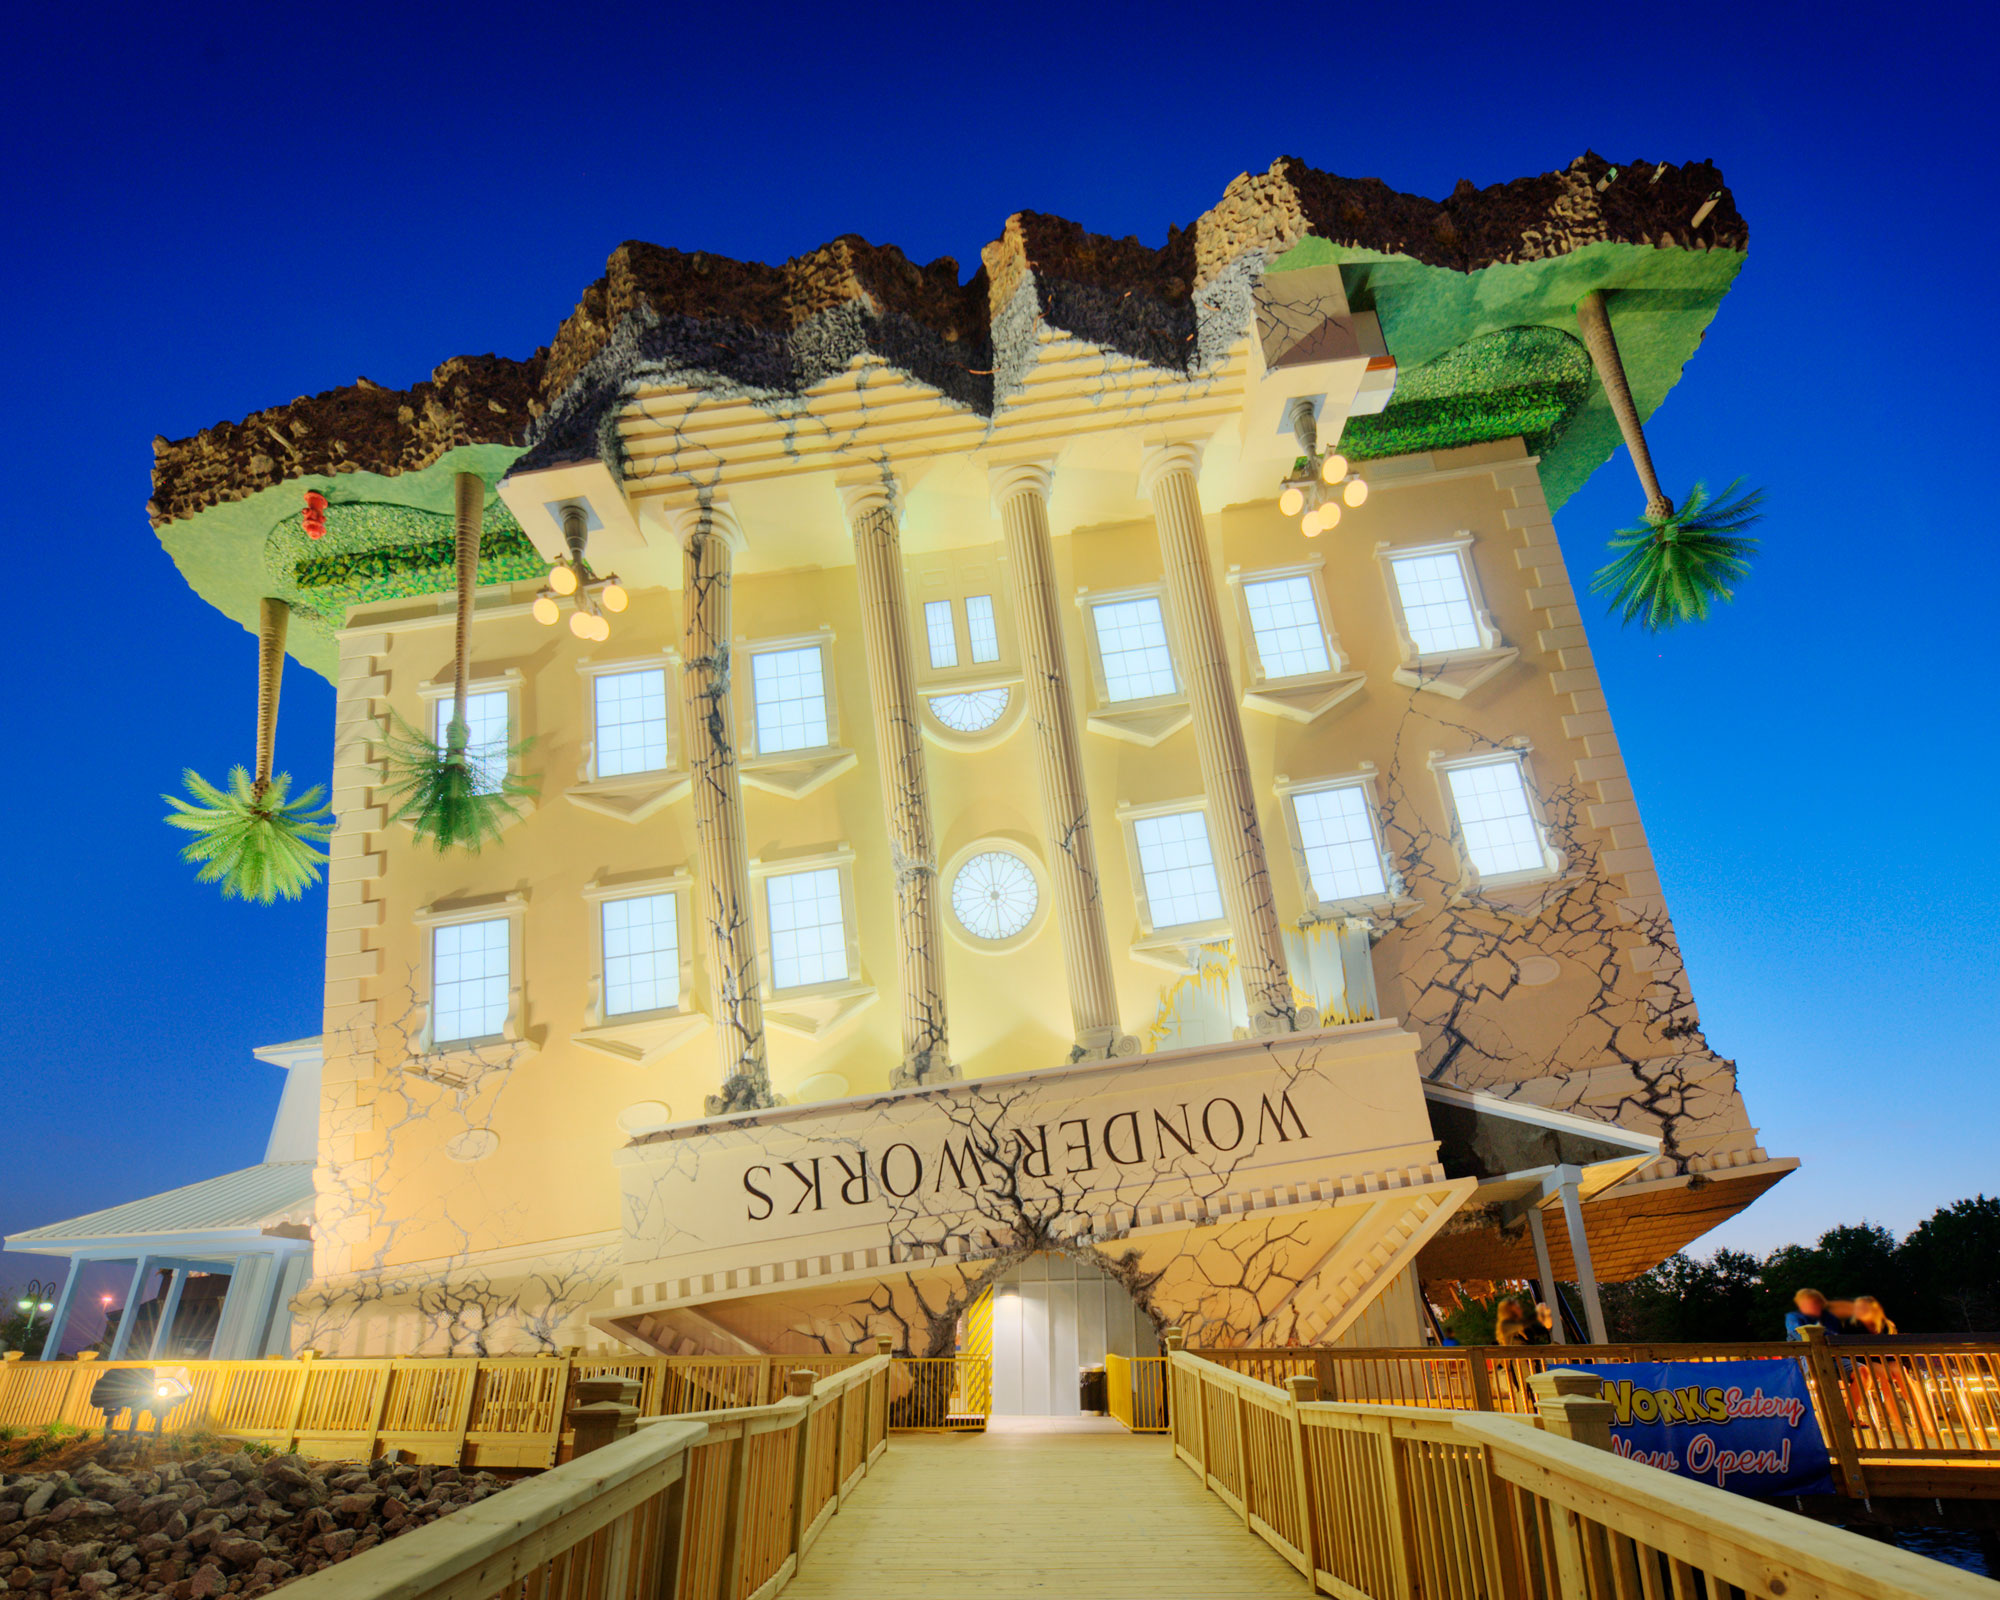 Myrtle Beach Wonderworks Is One Of The Most Por Attractions At Located Broadway This Family Fun Attraction Should Be On